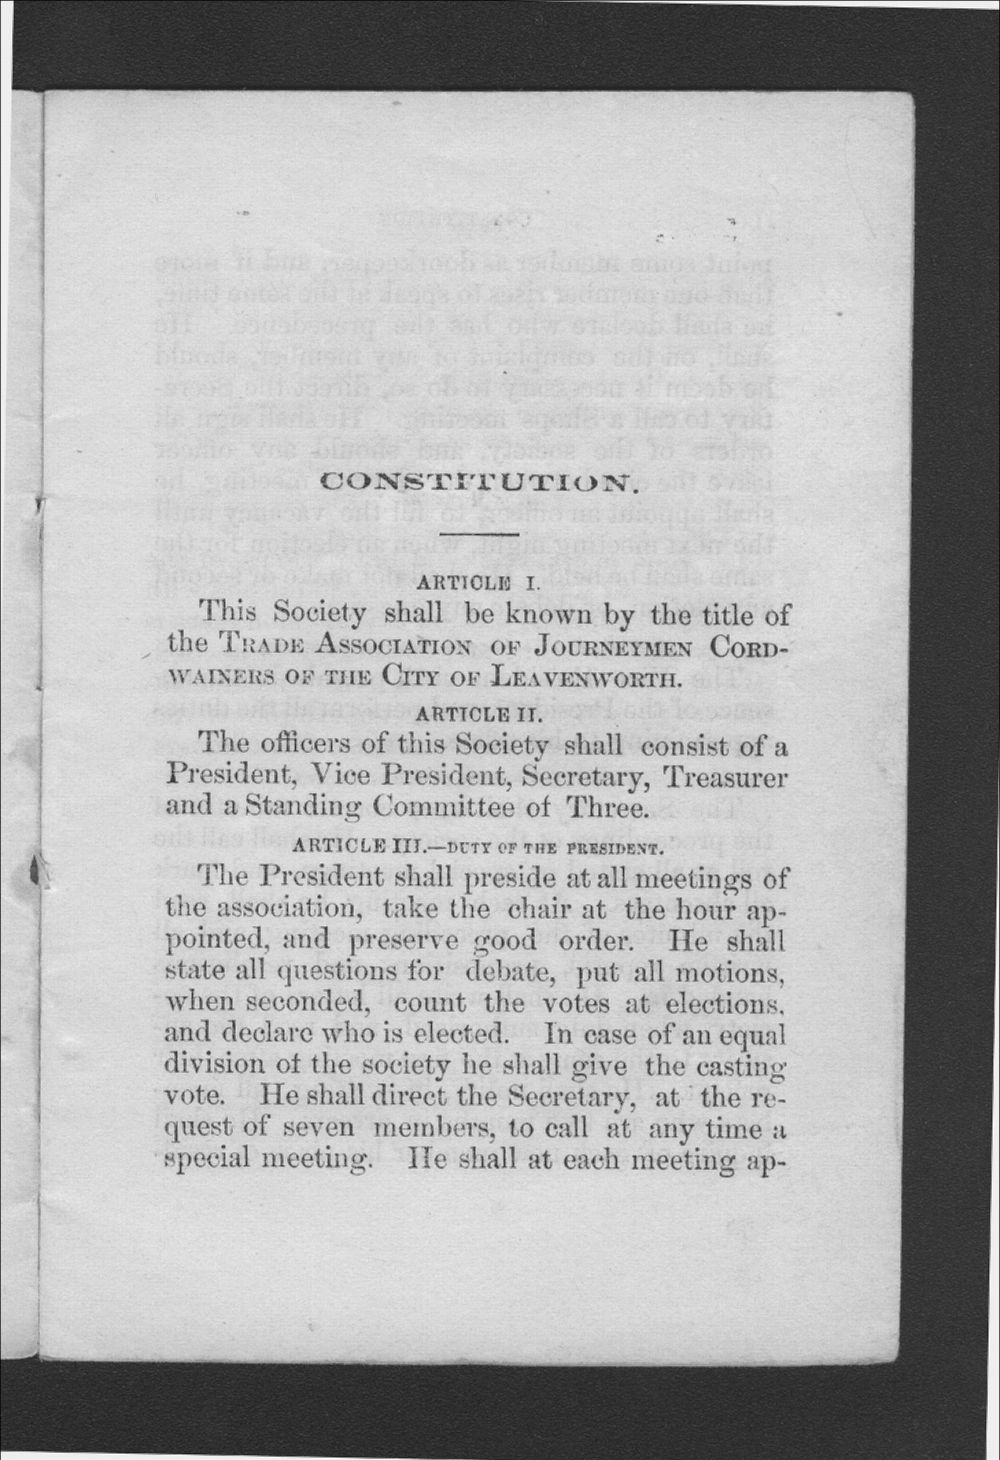 Constitution and By-Laws of the Trade Association of Journeymen Cordwainers, of the City of Leavenworth, Kansas - 3